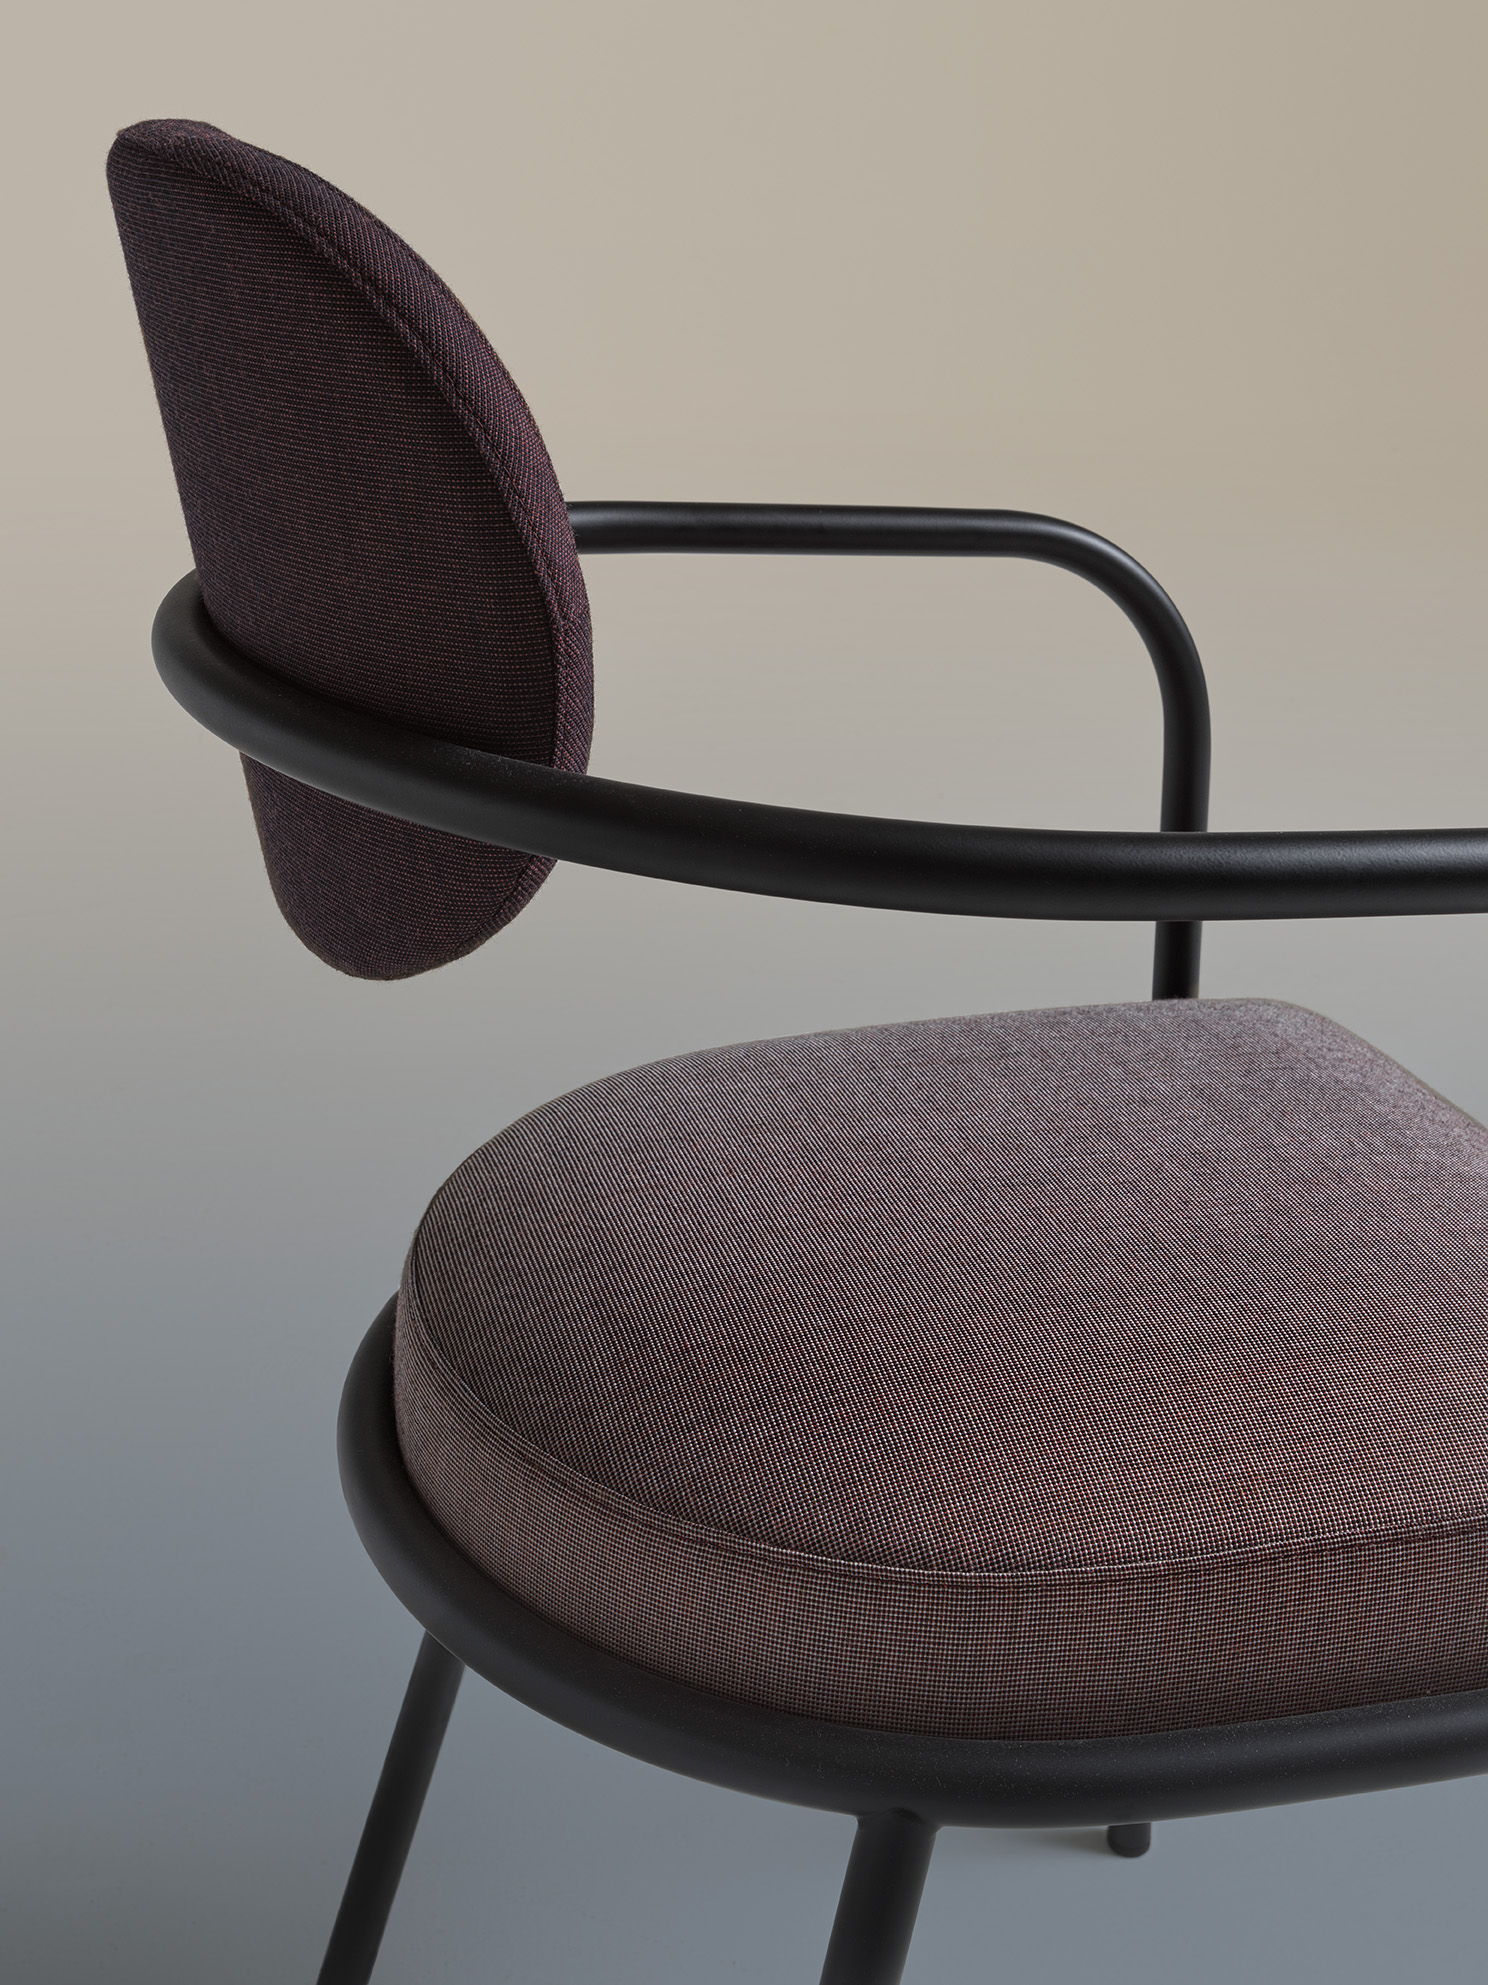 Ula Armchair - <p>Distinguished by its curved tubular frame and fabric upholstery, Ula stands out for its slim, rounded body which alternates with the welcoming shapes of the padded seat and backrest. Ula is a chair with light volumes and precise shapes. The seat armrest bends down towards the floor, to such an extent that it becomes its front leg, giving the chair itself a truly light-weight appearance, making it look almost suspended.</p> <p>Ula Chair is made of a tubular steel frame. Seat and back are in polyurethane foam and polyester fiber lining. Cover in mono or two coloured fabric.</p> <p>A range of materials, colours and sizes are available in a number of combinations. Prices may vary.<br /> Please enquire for full details.</p>  | Matter of Stuff